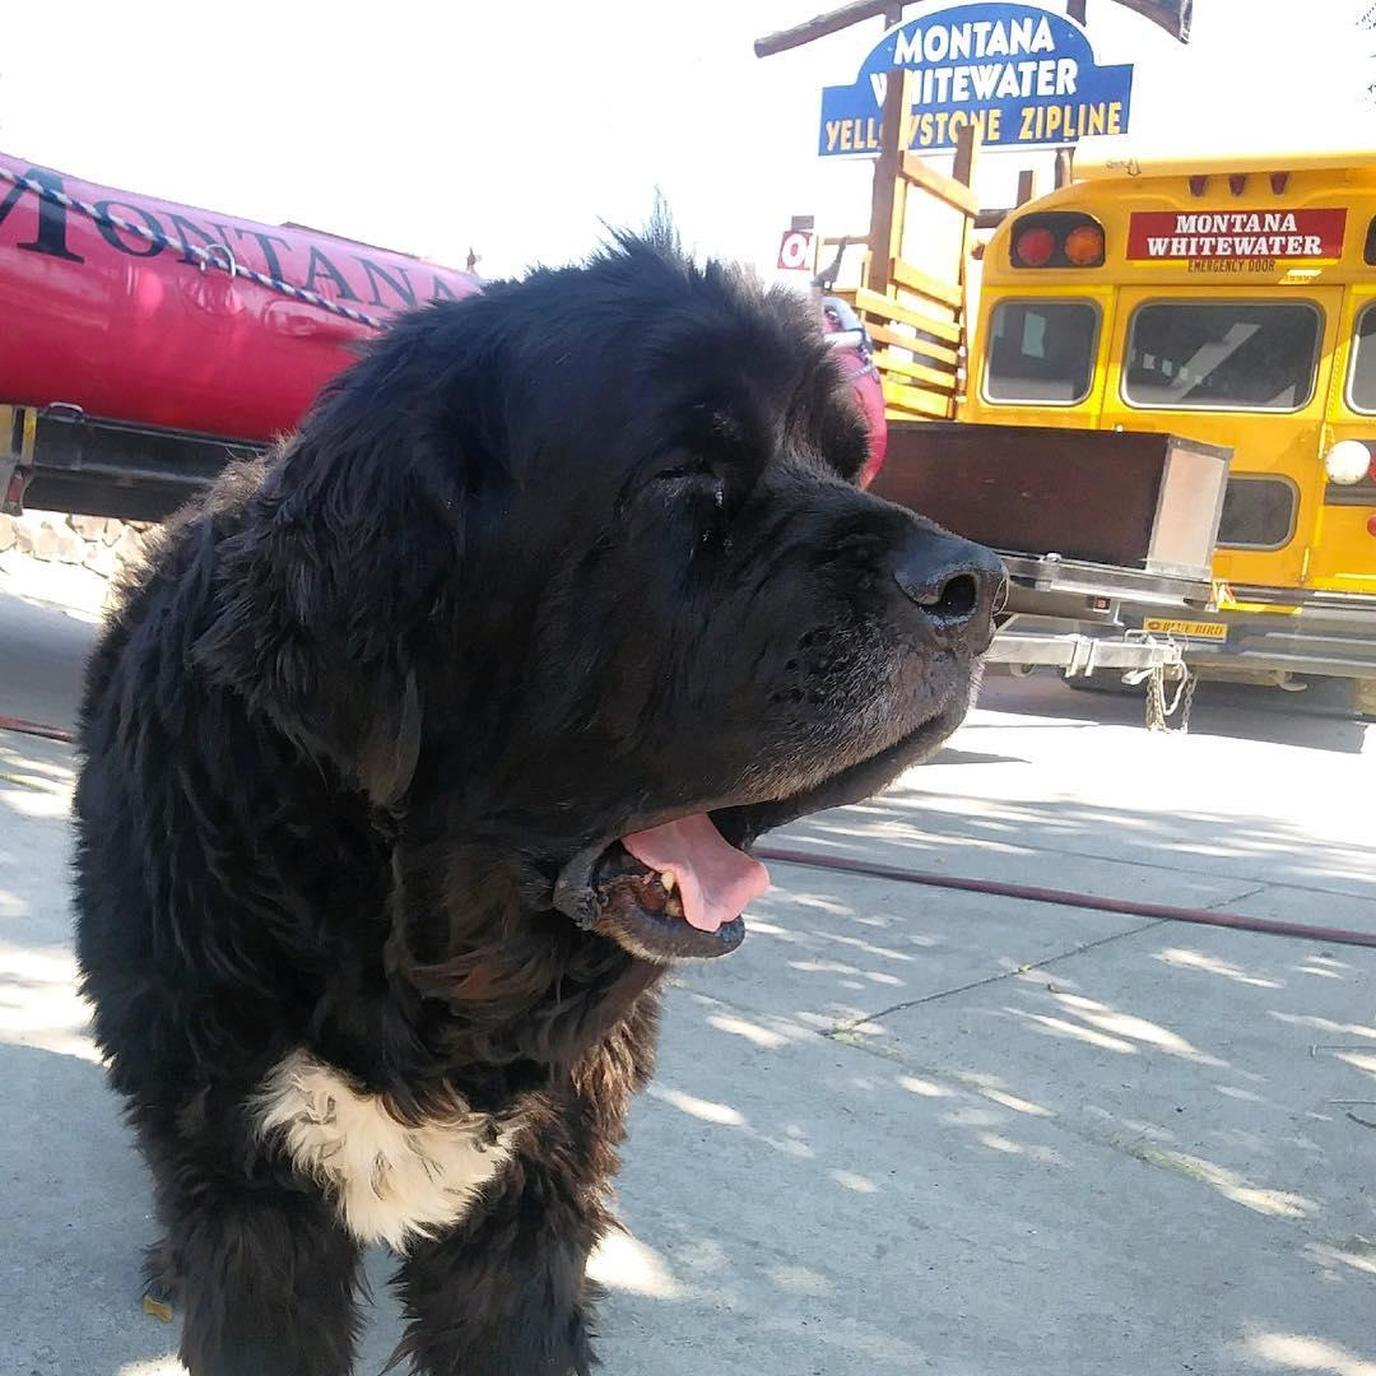 Go tubing with your dog near Yellowstone National Park in Montana.